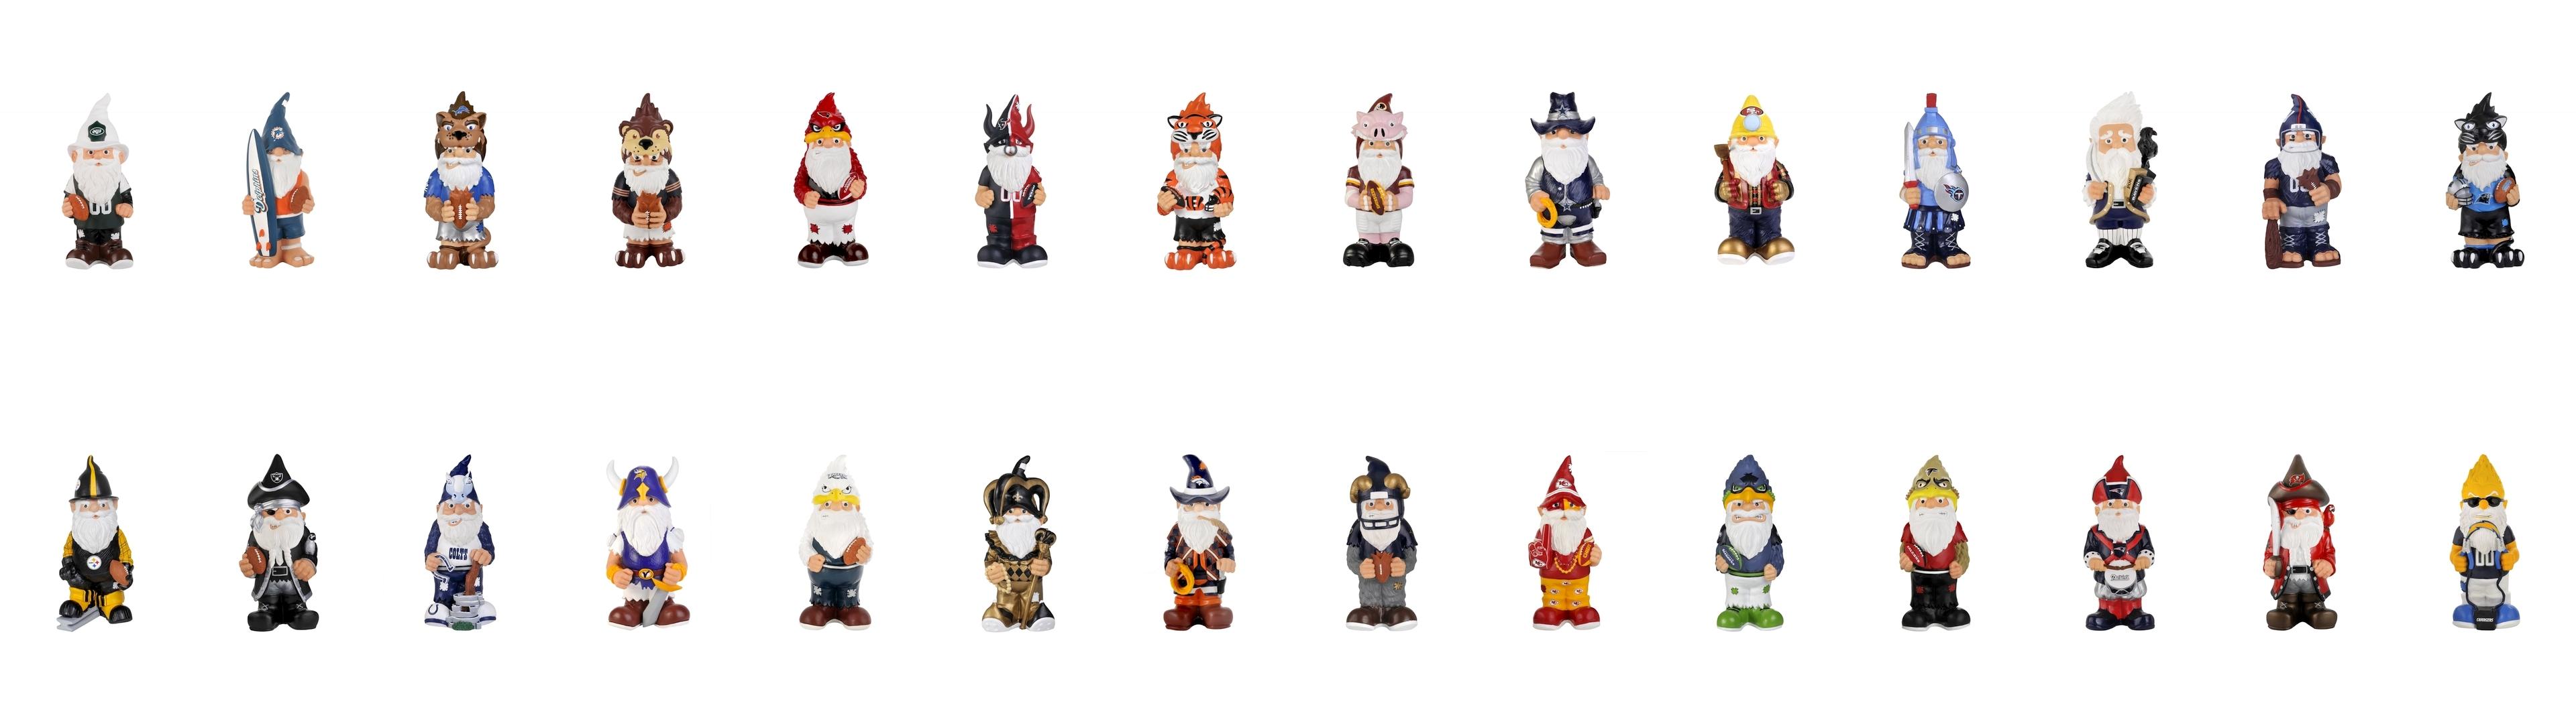 NFL Thematic Garden Gnomes.jpg